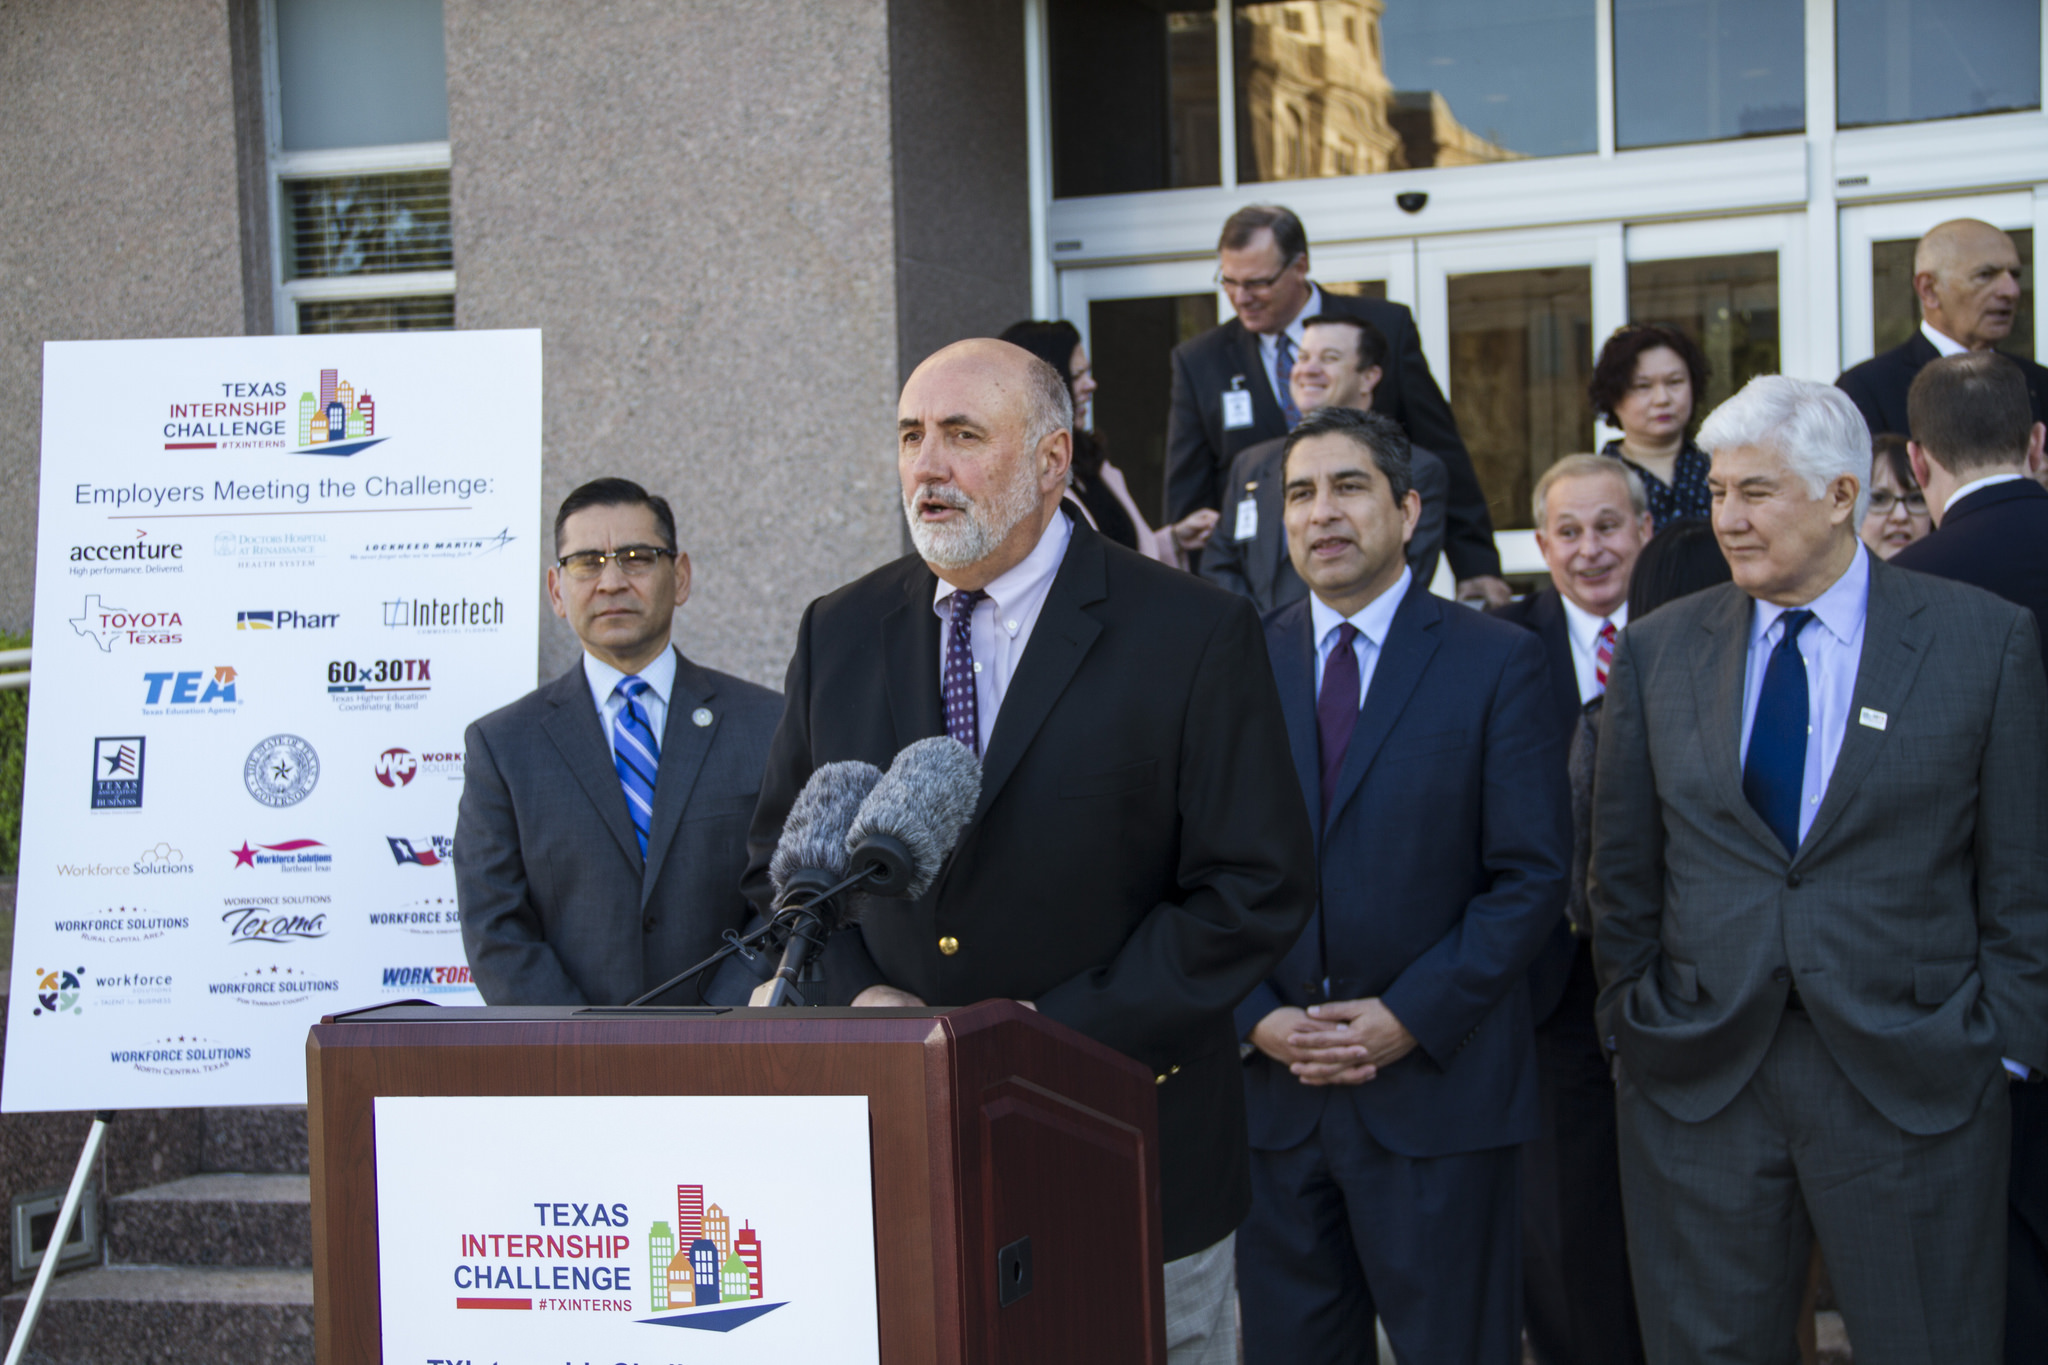 """TWC Executive Director Larry Temple speaking at the launch of the """"Texas Internship Challenge,"""" a statewide campaign to increase and promote internships for students in Texas."""